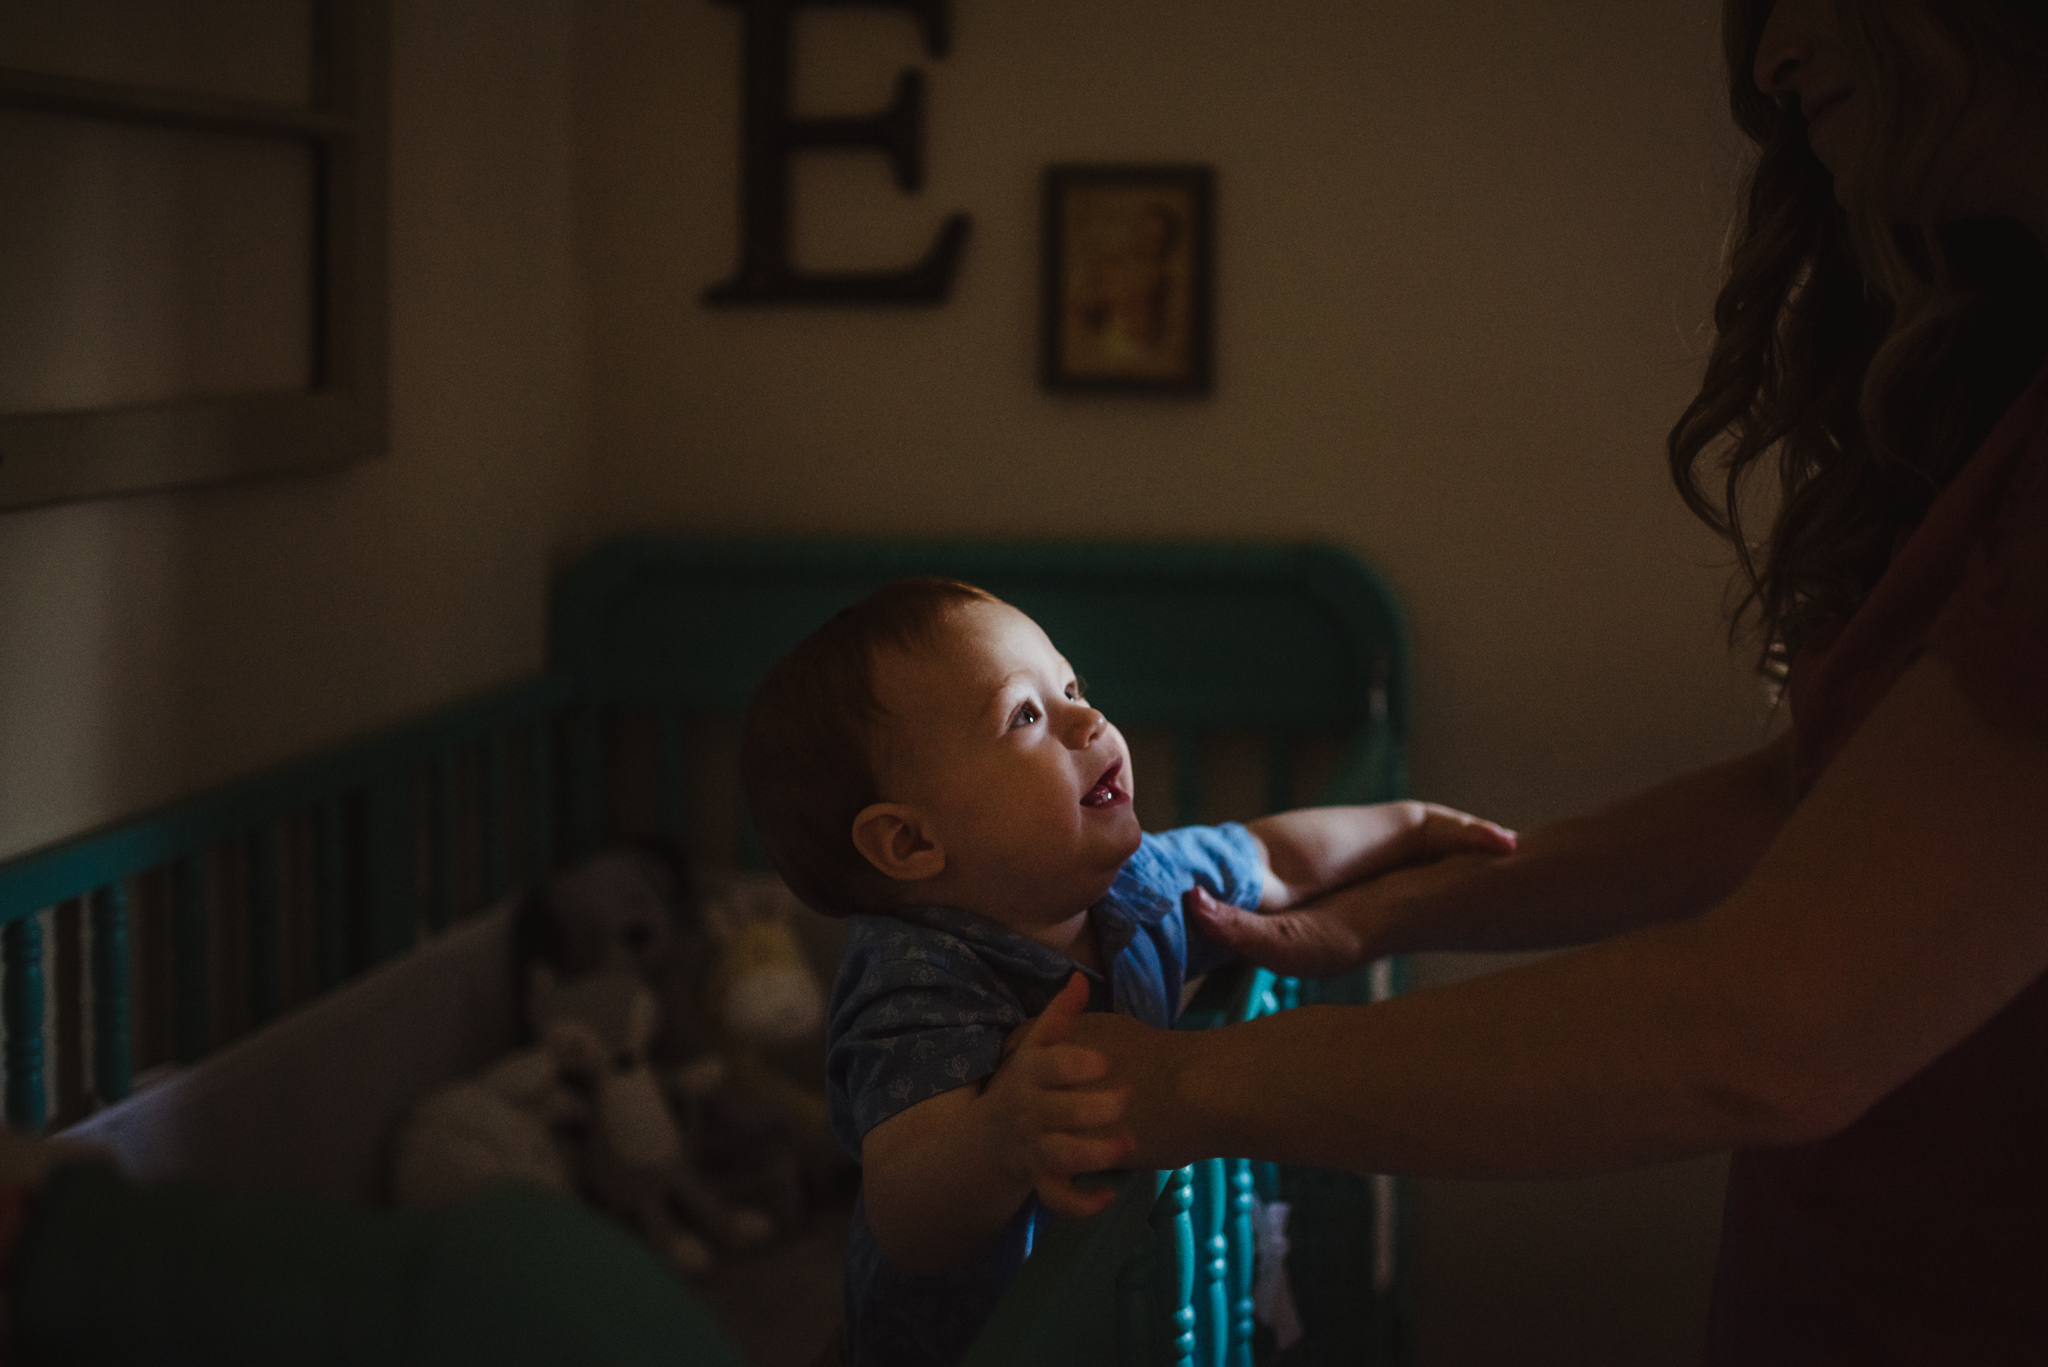 The baby reaches for Mom in his crib during their lifestyle session at home in Wake Forest with Rose Trail Images.